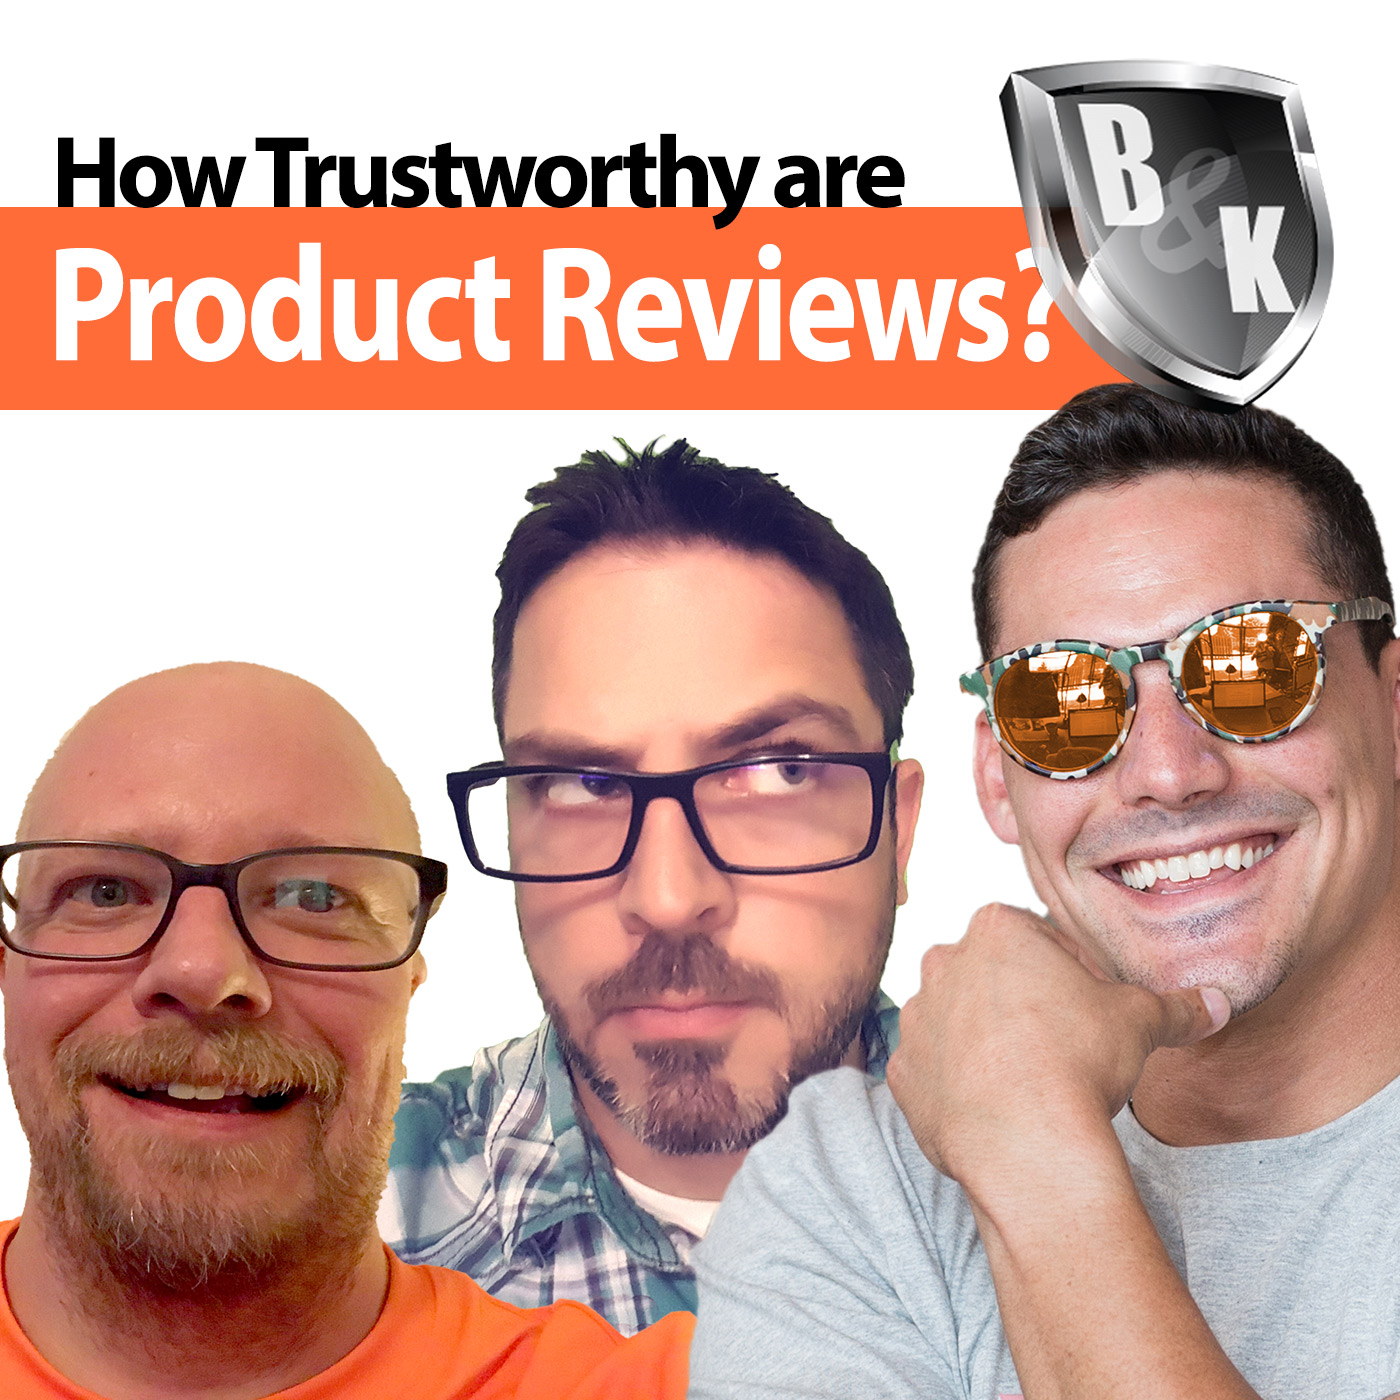 Ep. 013 - How trustworthy are product reviews? With special guest Andrew Barta